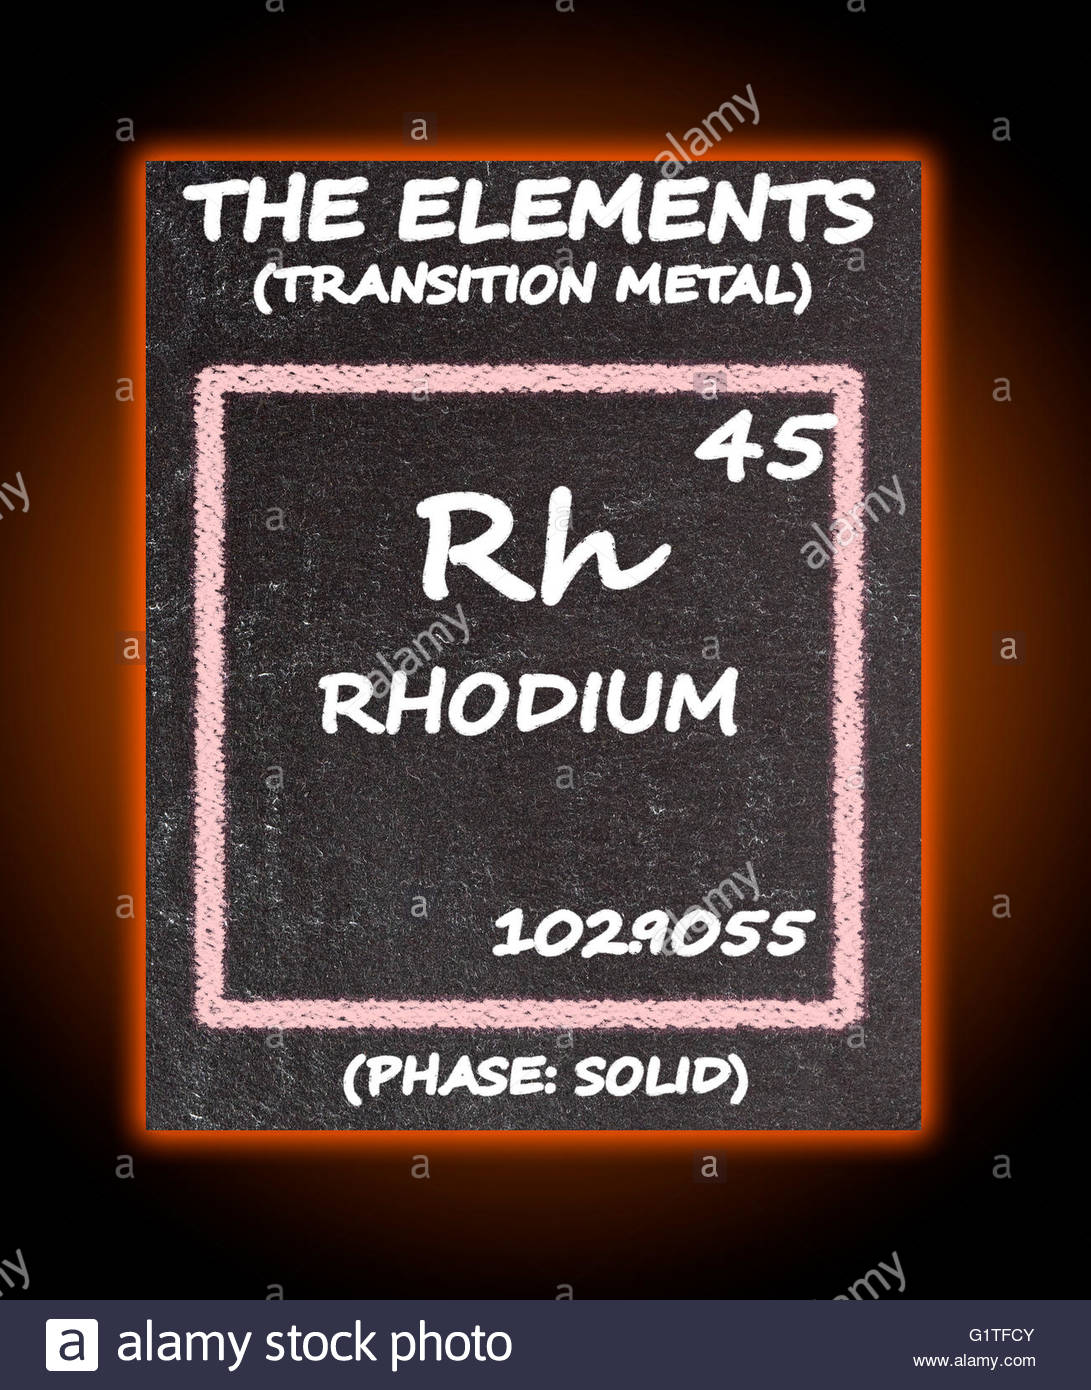 Rhodium details from the periodic table stock photo royalty rhodium details from the periodic table gamestrikefo Image collections